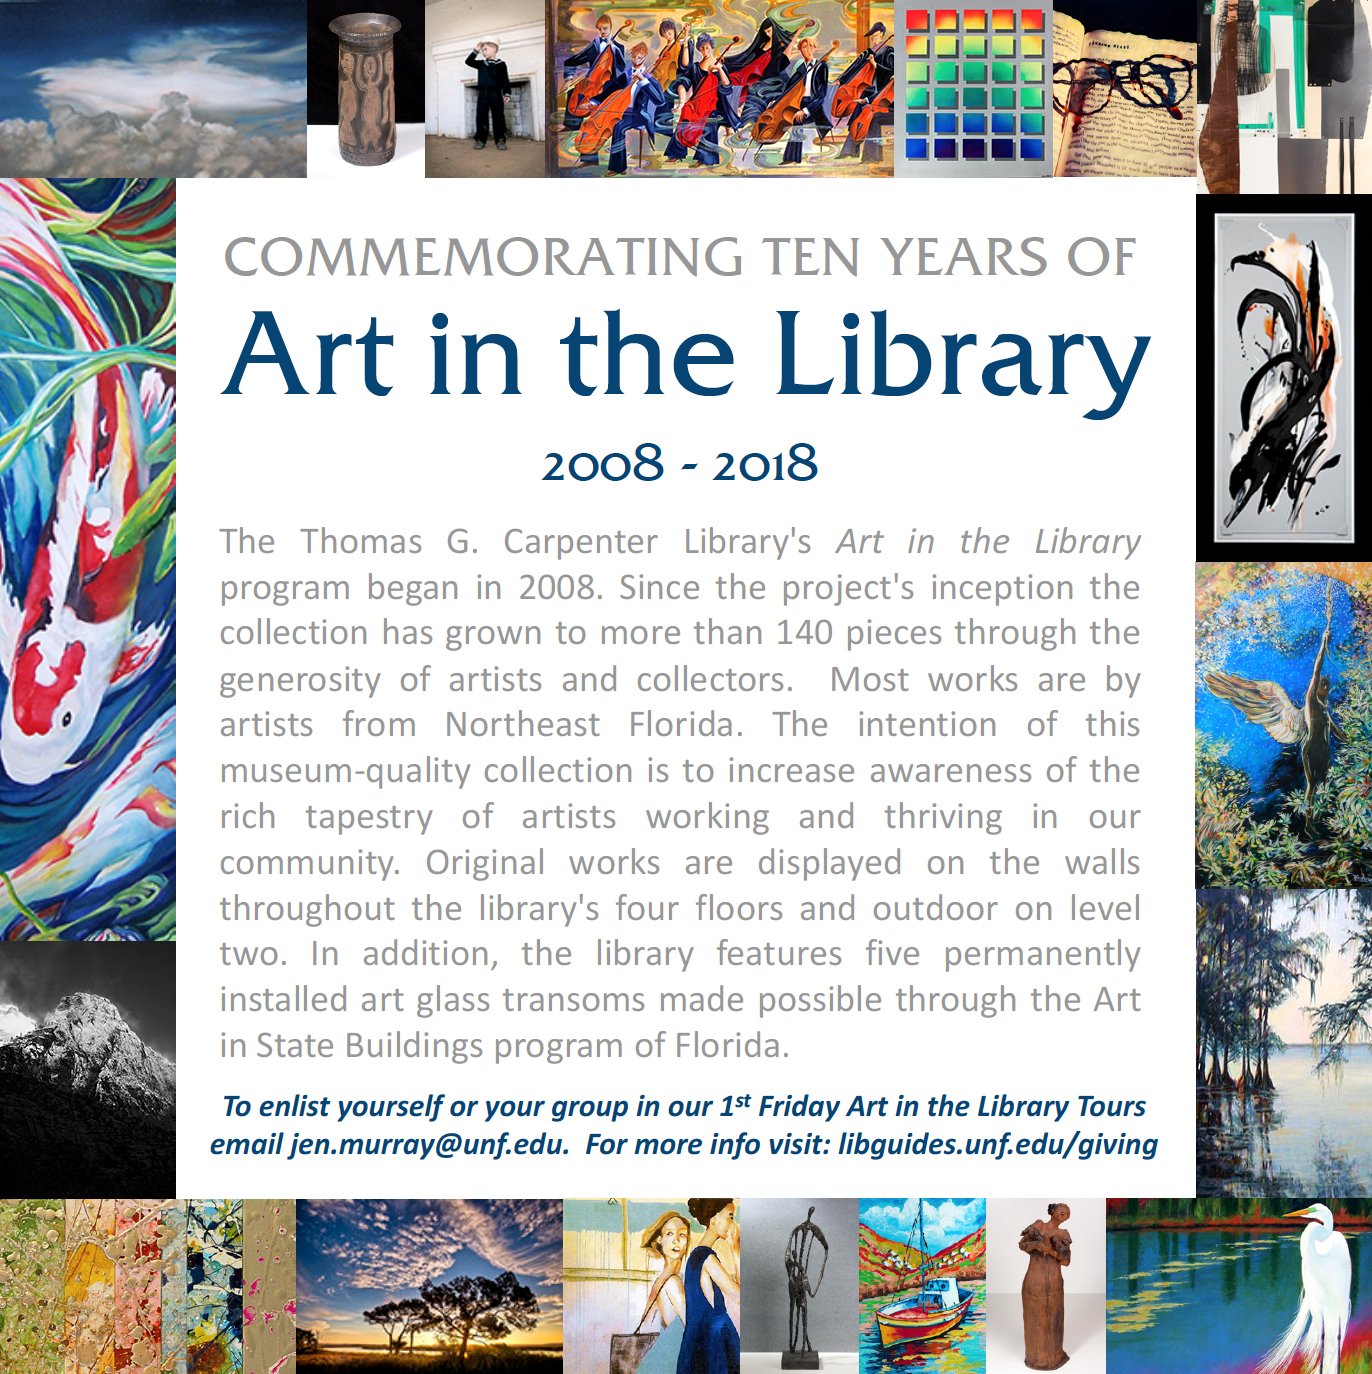 10th Anniversary - ART IN THE LIBRARY TOUR